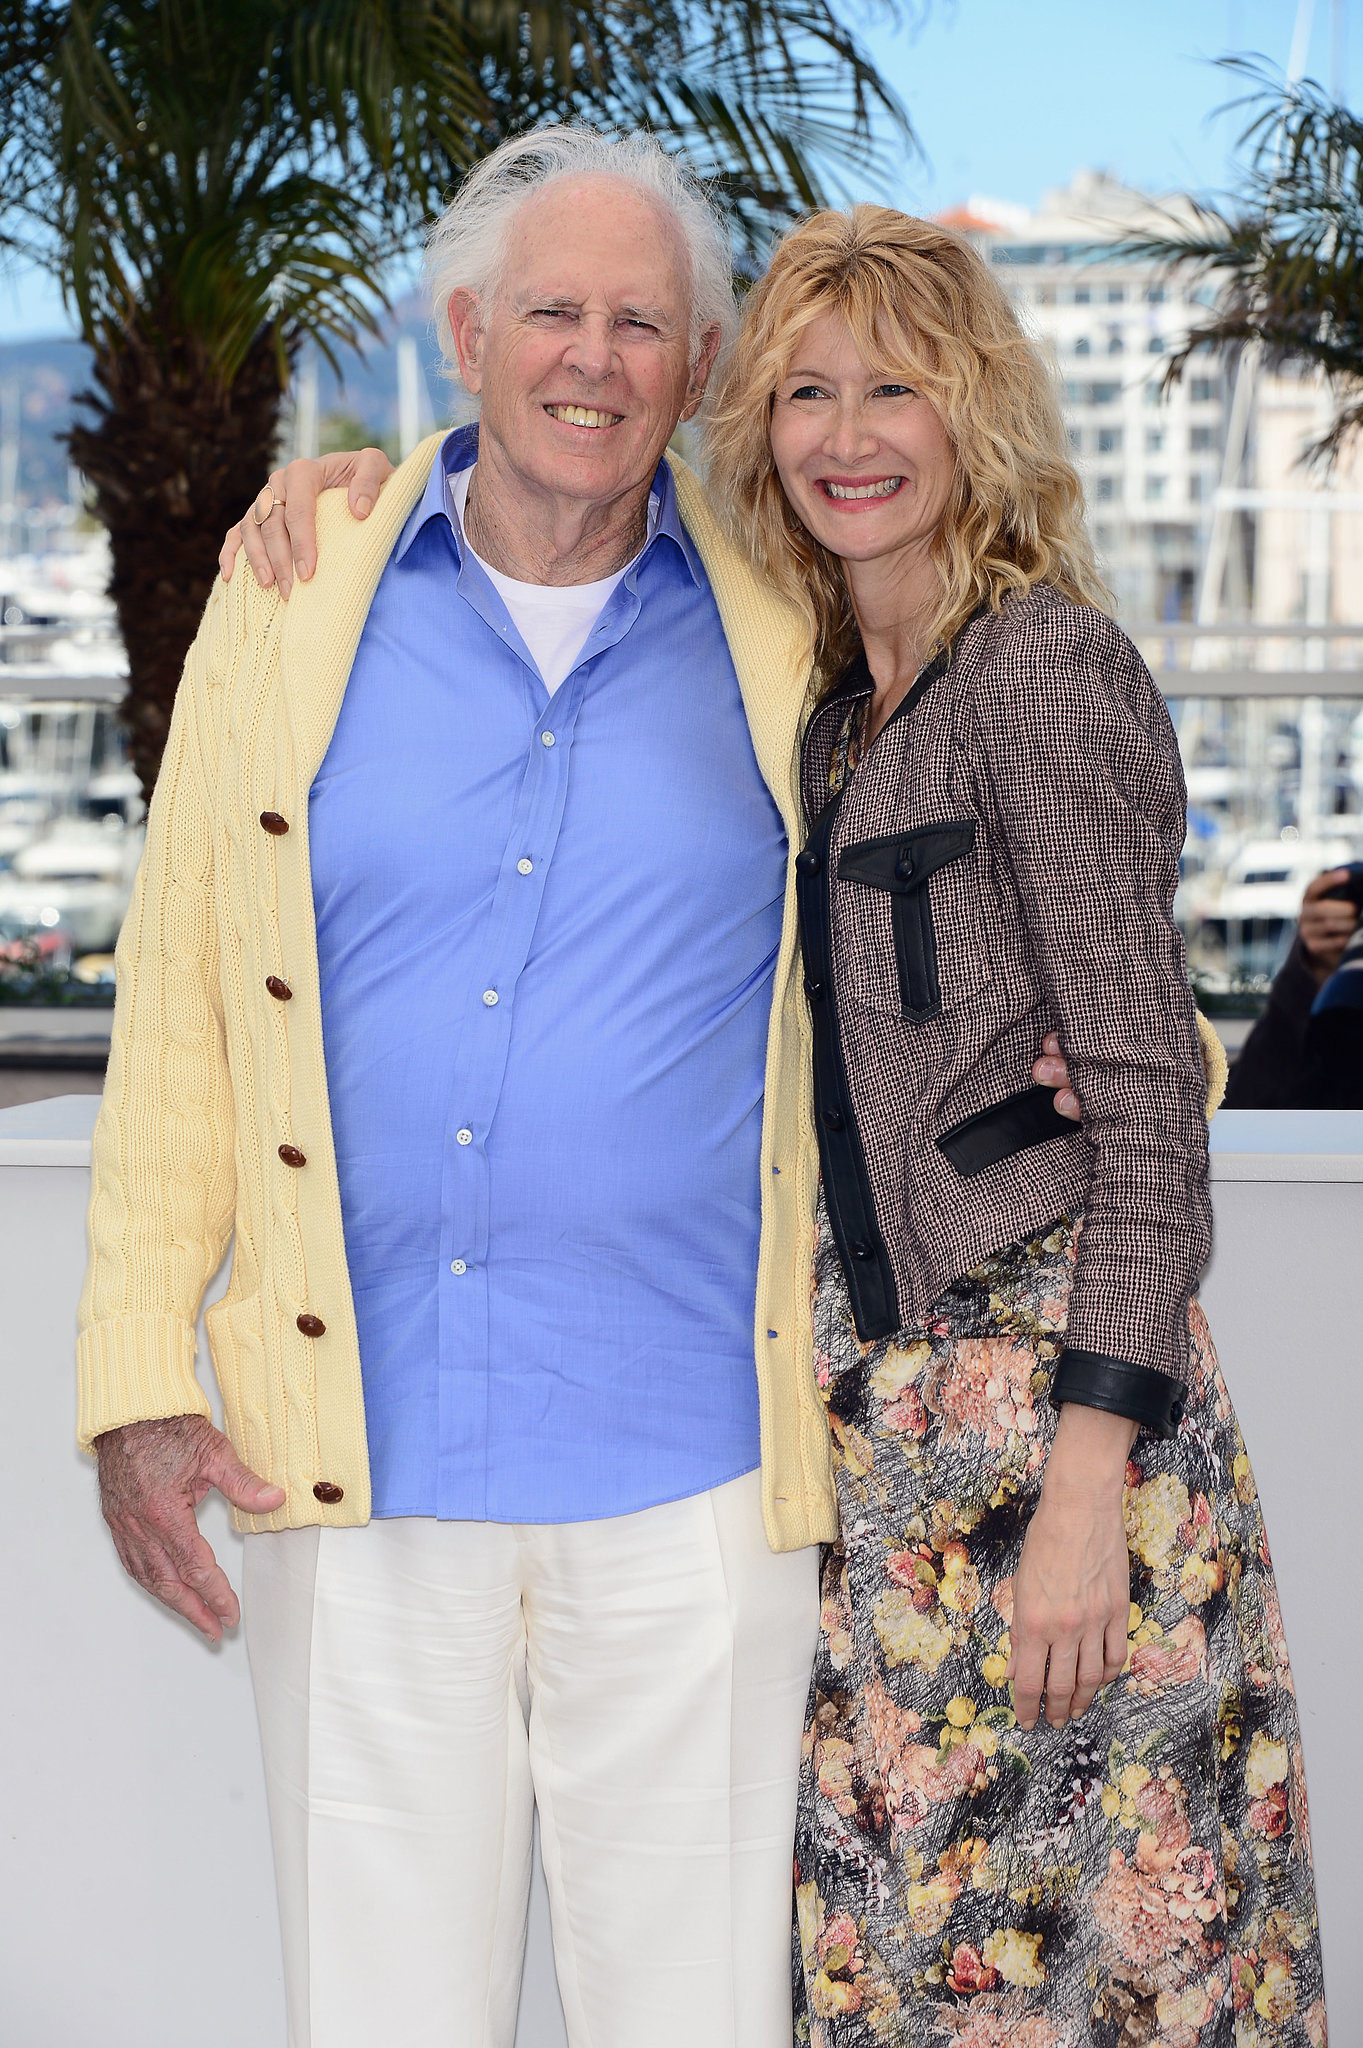 Laura Dern and her dad, Bruce Dern, smiled at a photocall for Nebraska on Thursday in Cannes.